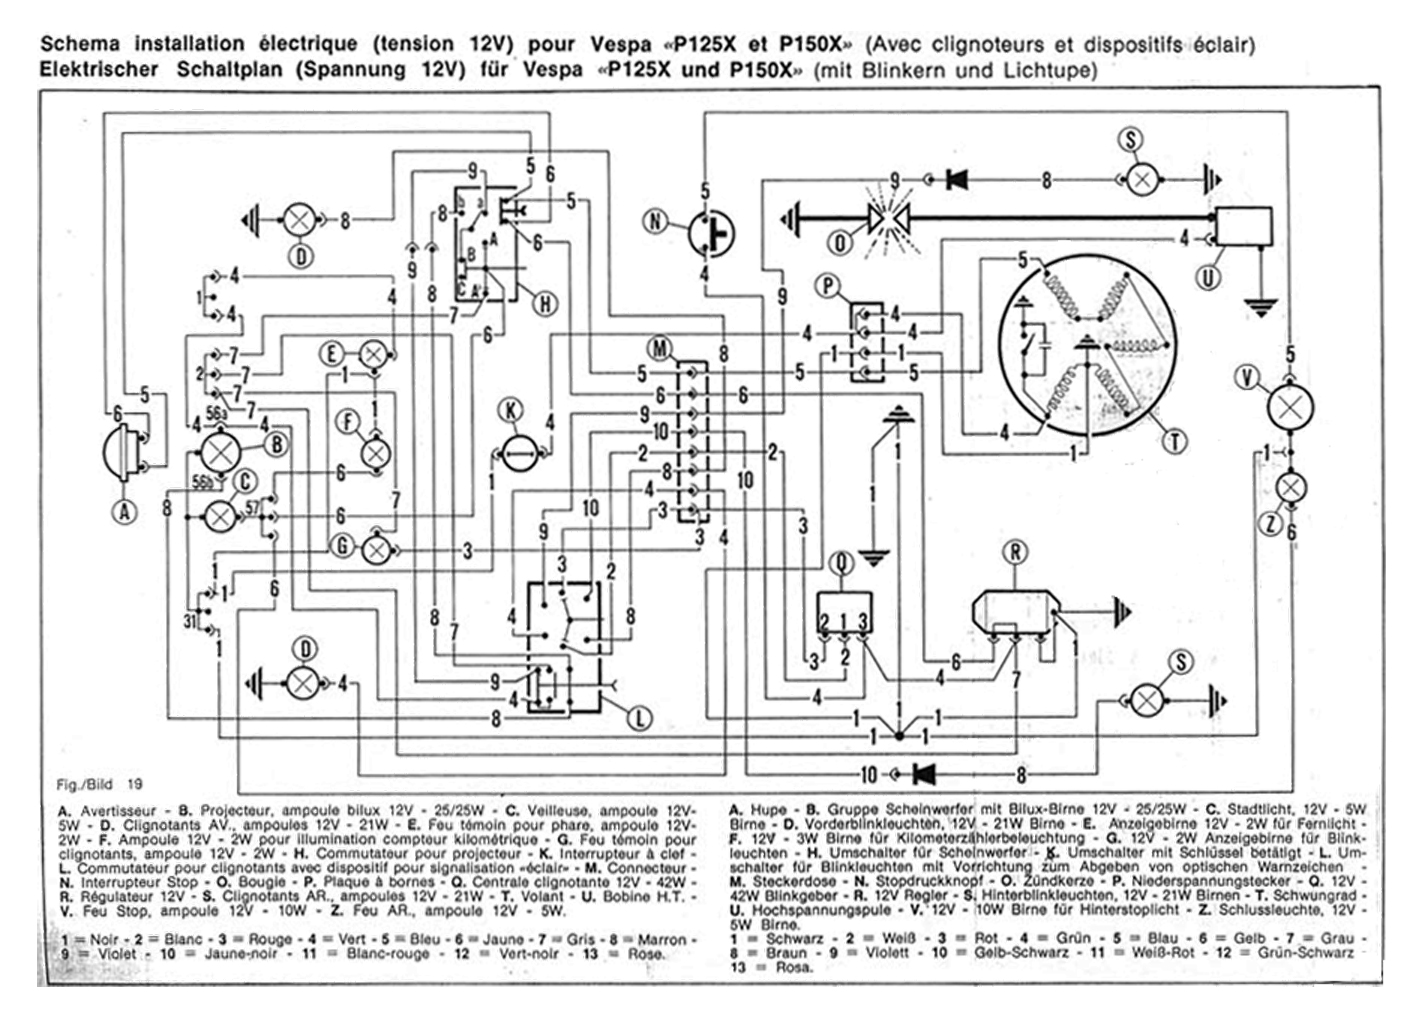 wiring diagrams wiring diagrams rh kabel schute de vespa et4 150 wiring diagram vespa et4 125 wiring diagram